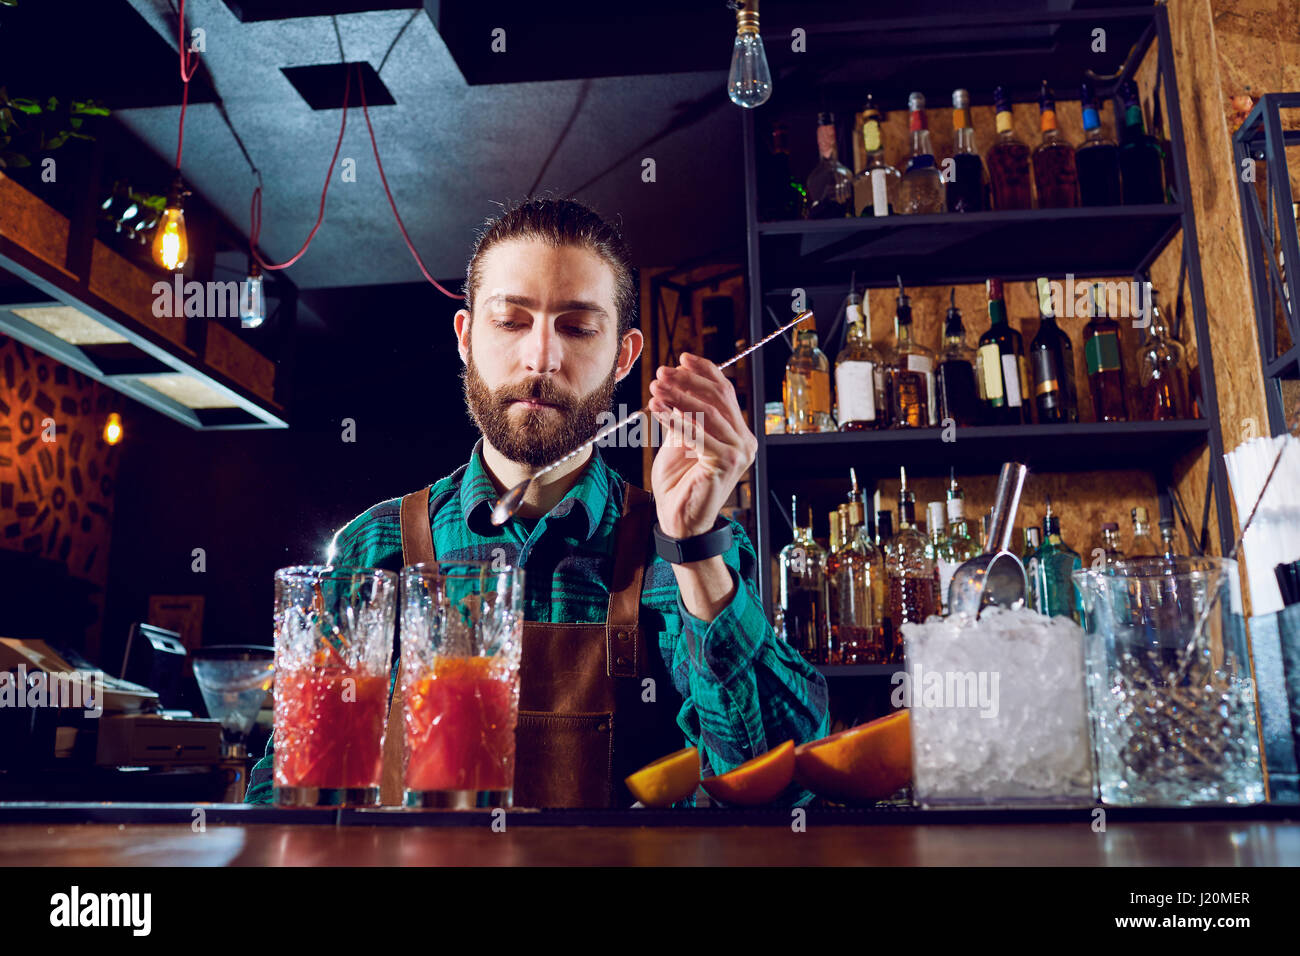 Hipster Bar Stockfotos & Hipster Bar Bilder - Alamy